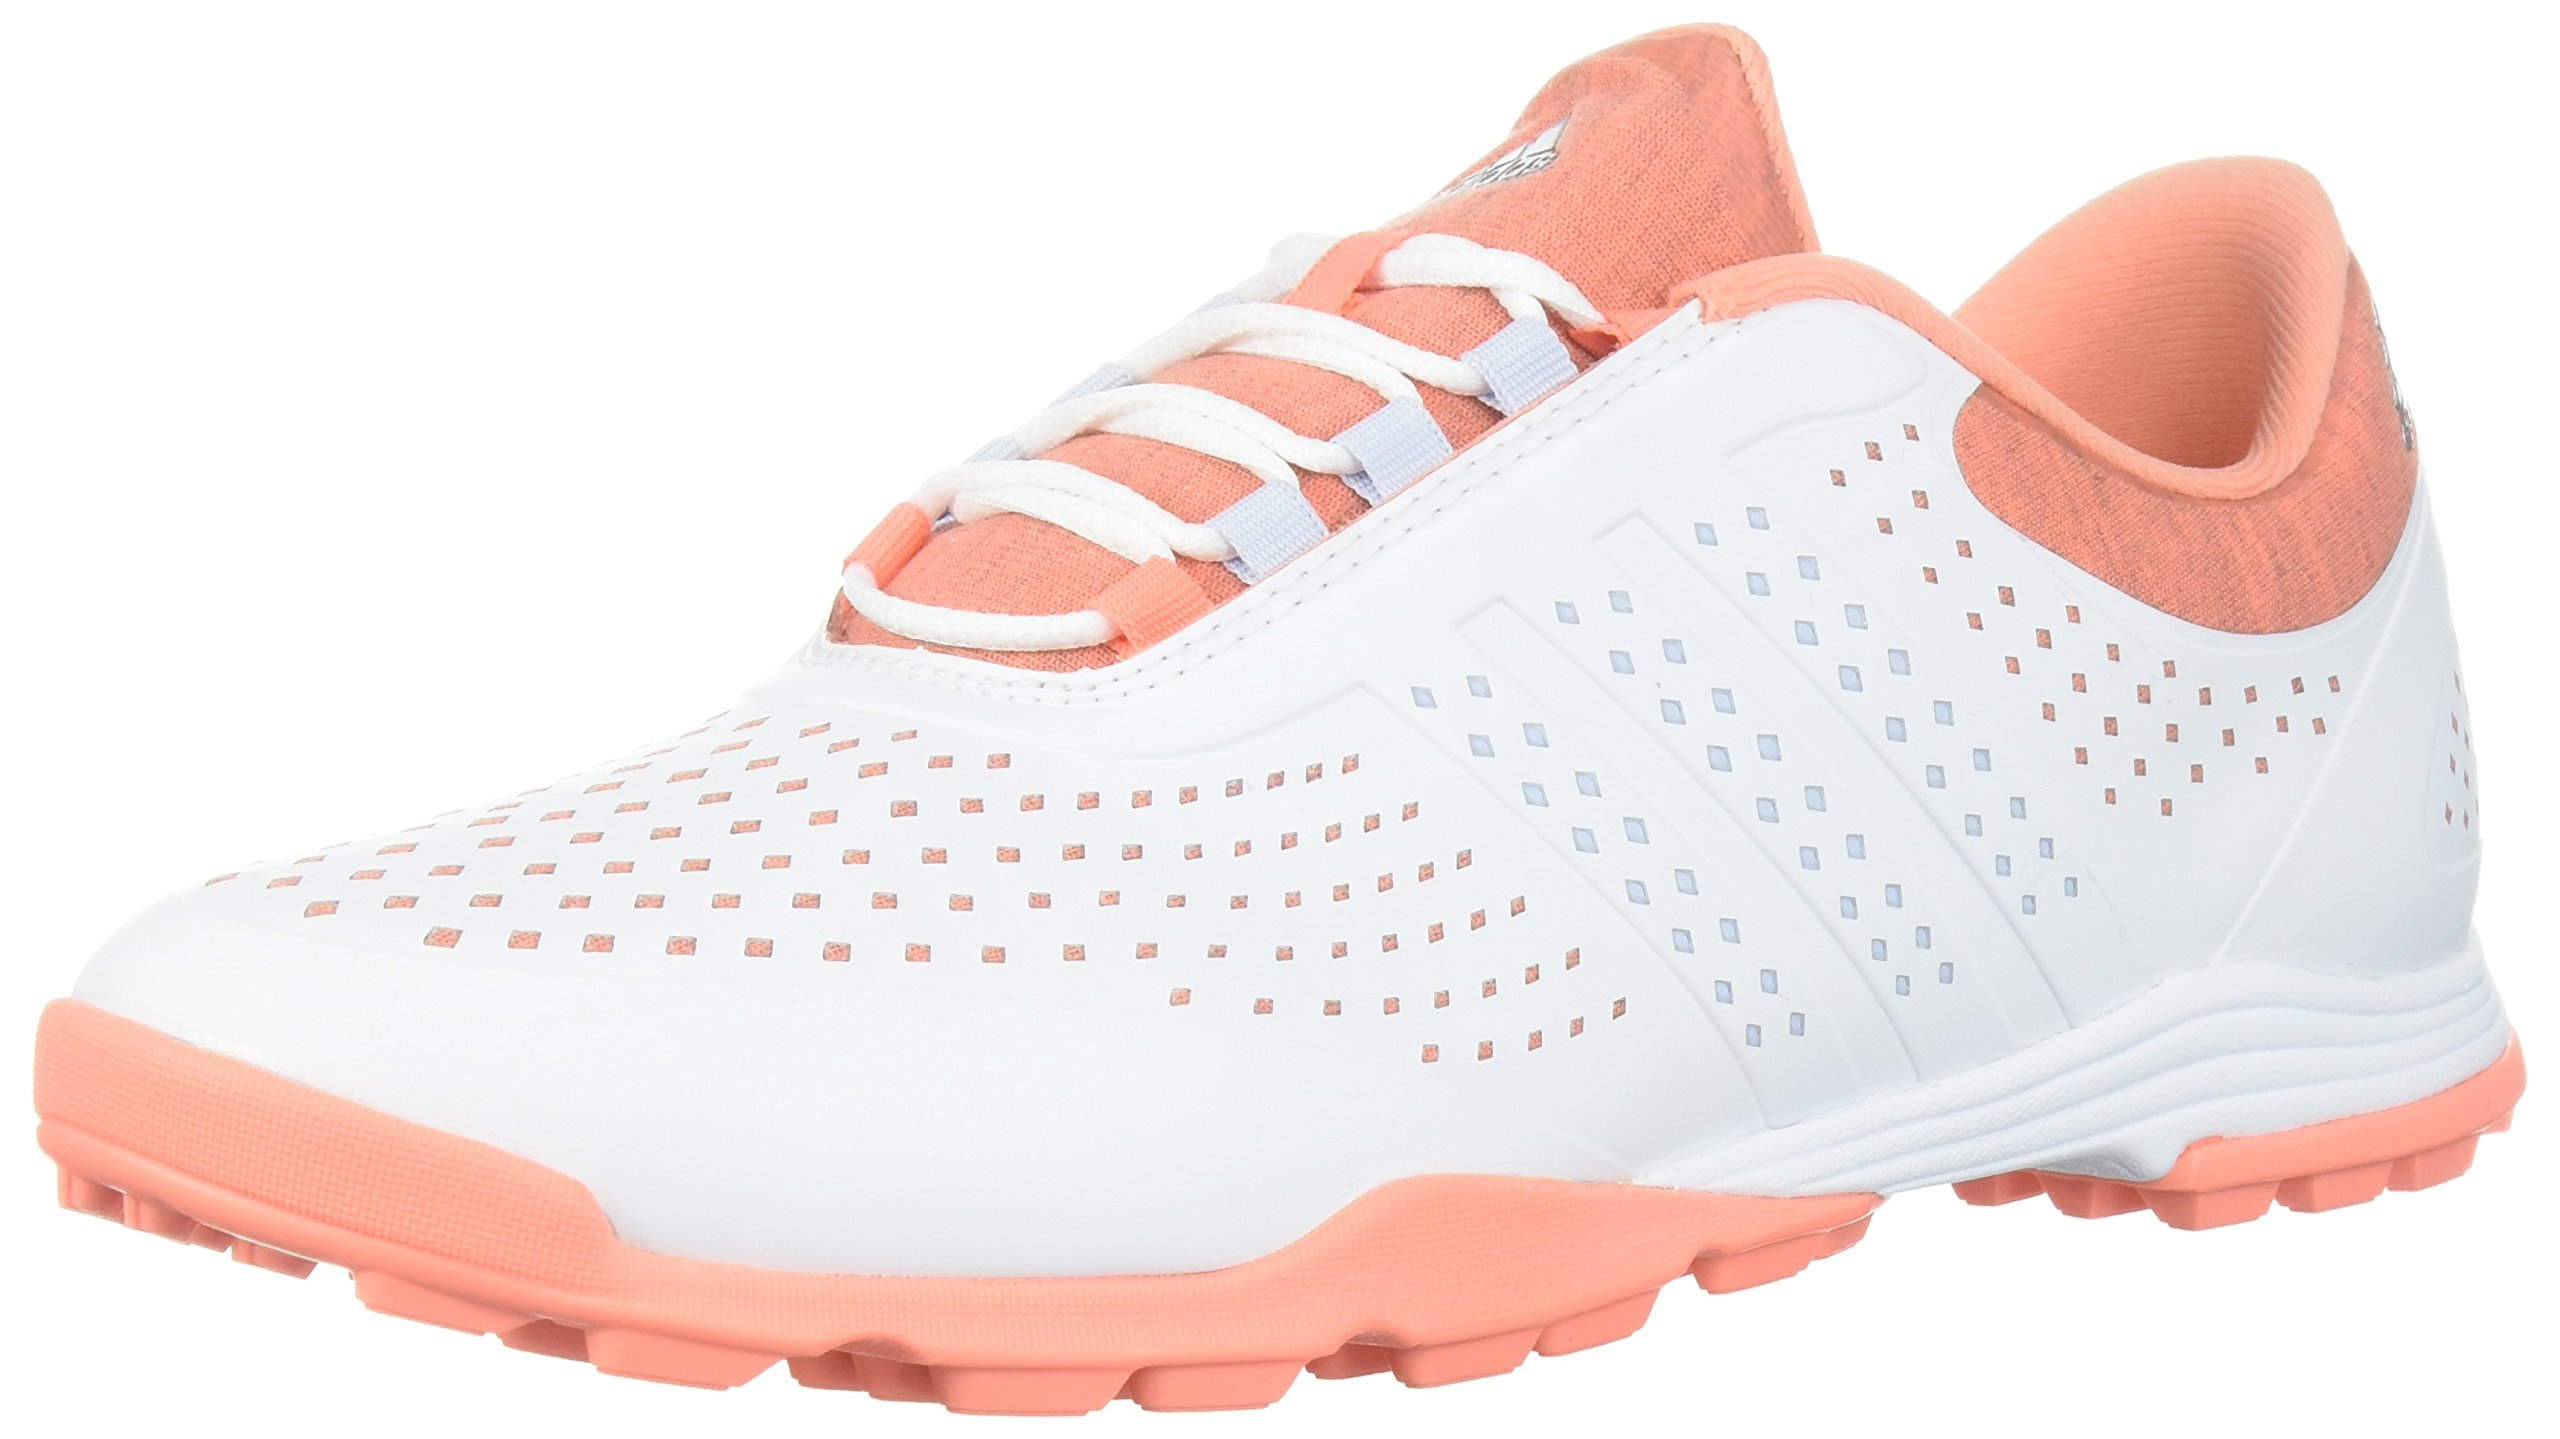 adidas Women's Adipure Sport Golf Shoe, White/Aero Blue/Chalk Coral, 8.5 Medium US by adidas